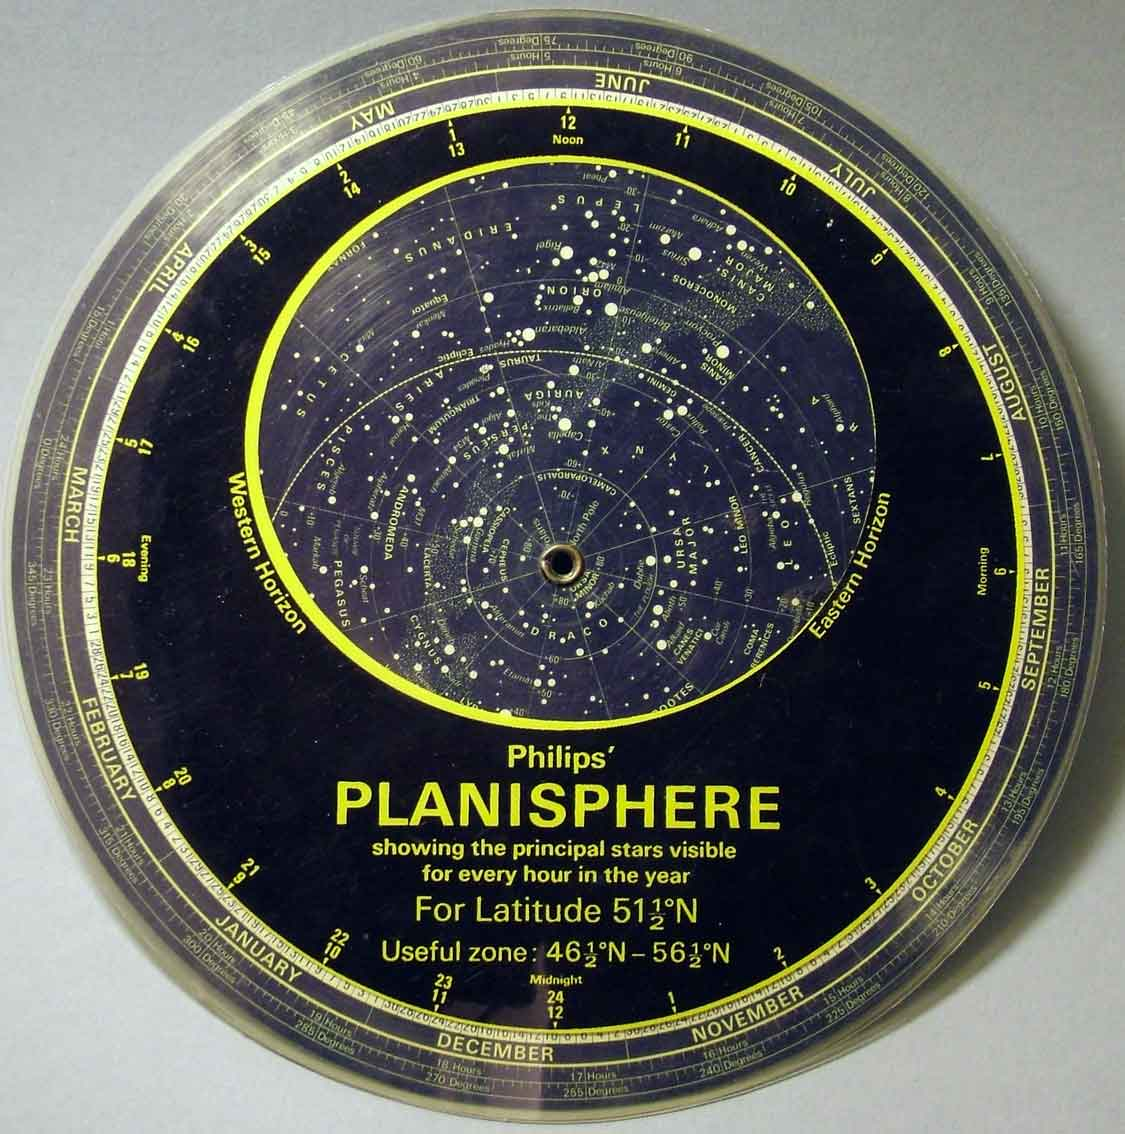 A planisphere for latitude 51.5N